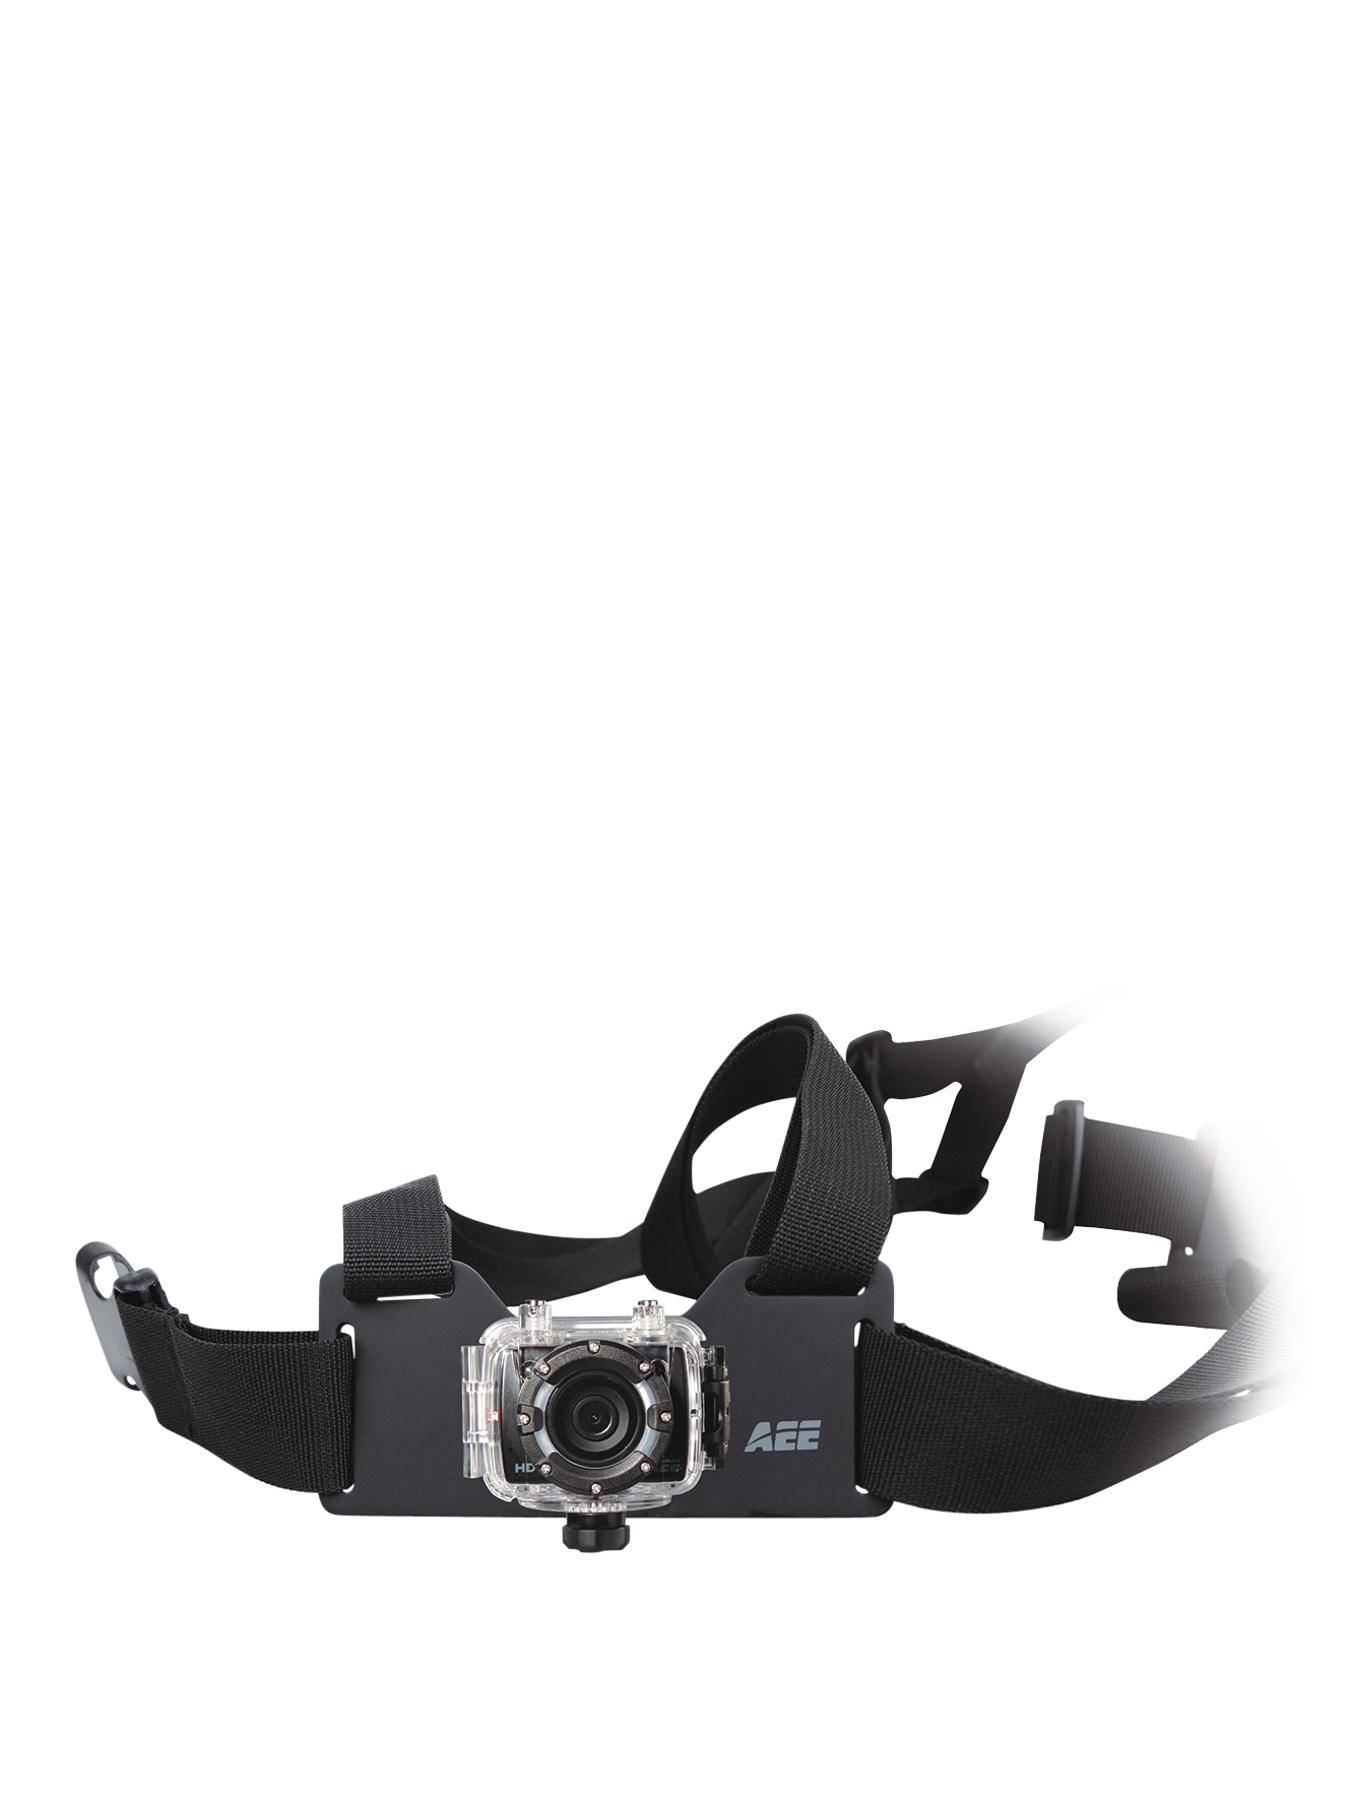 AEE Adjustable Chest Strap Mount for MagiCam Video Cameras